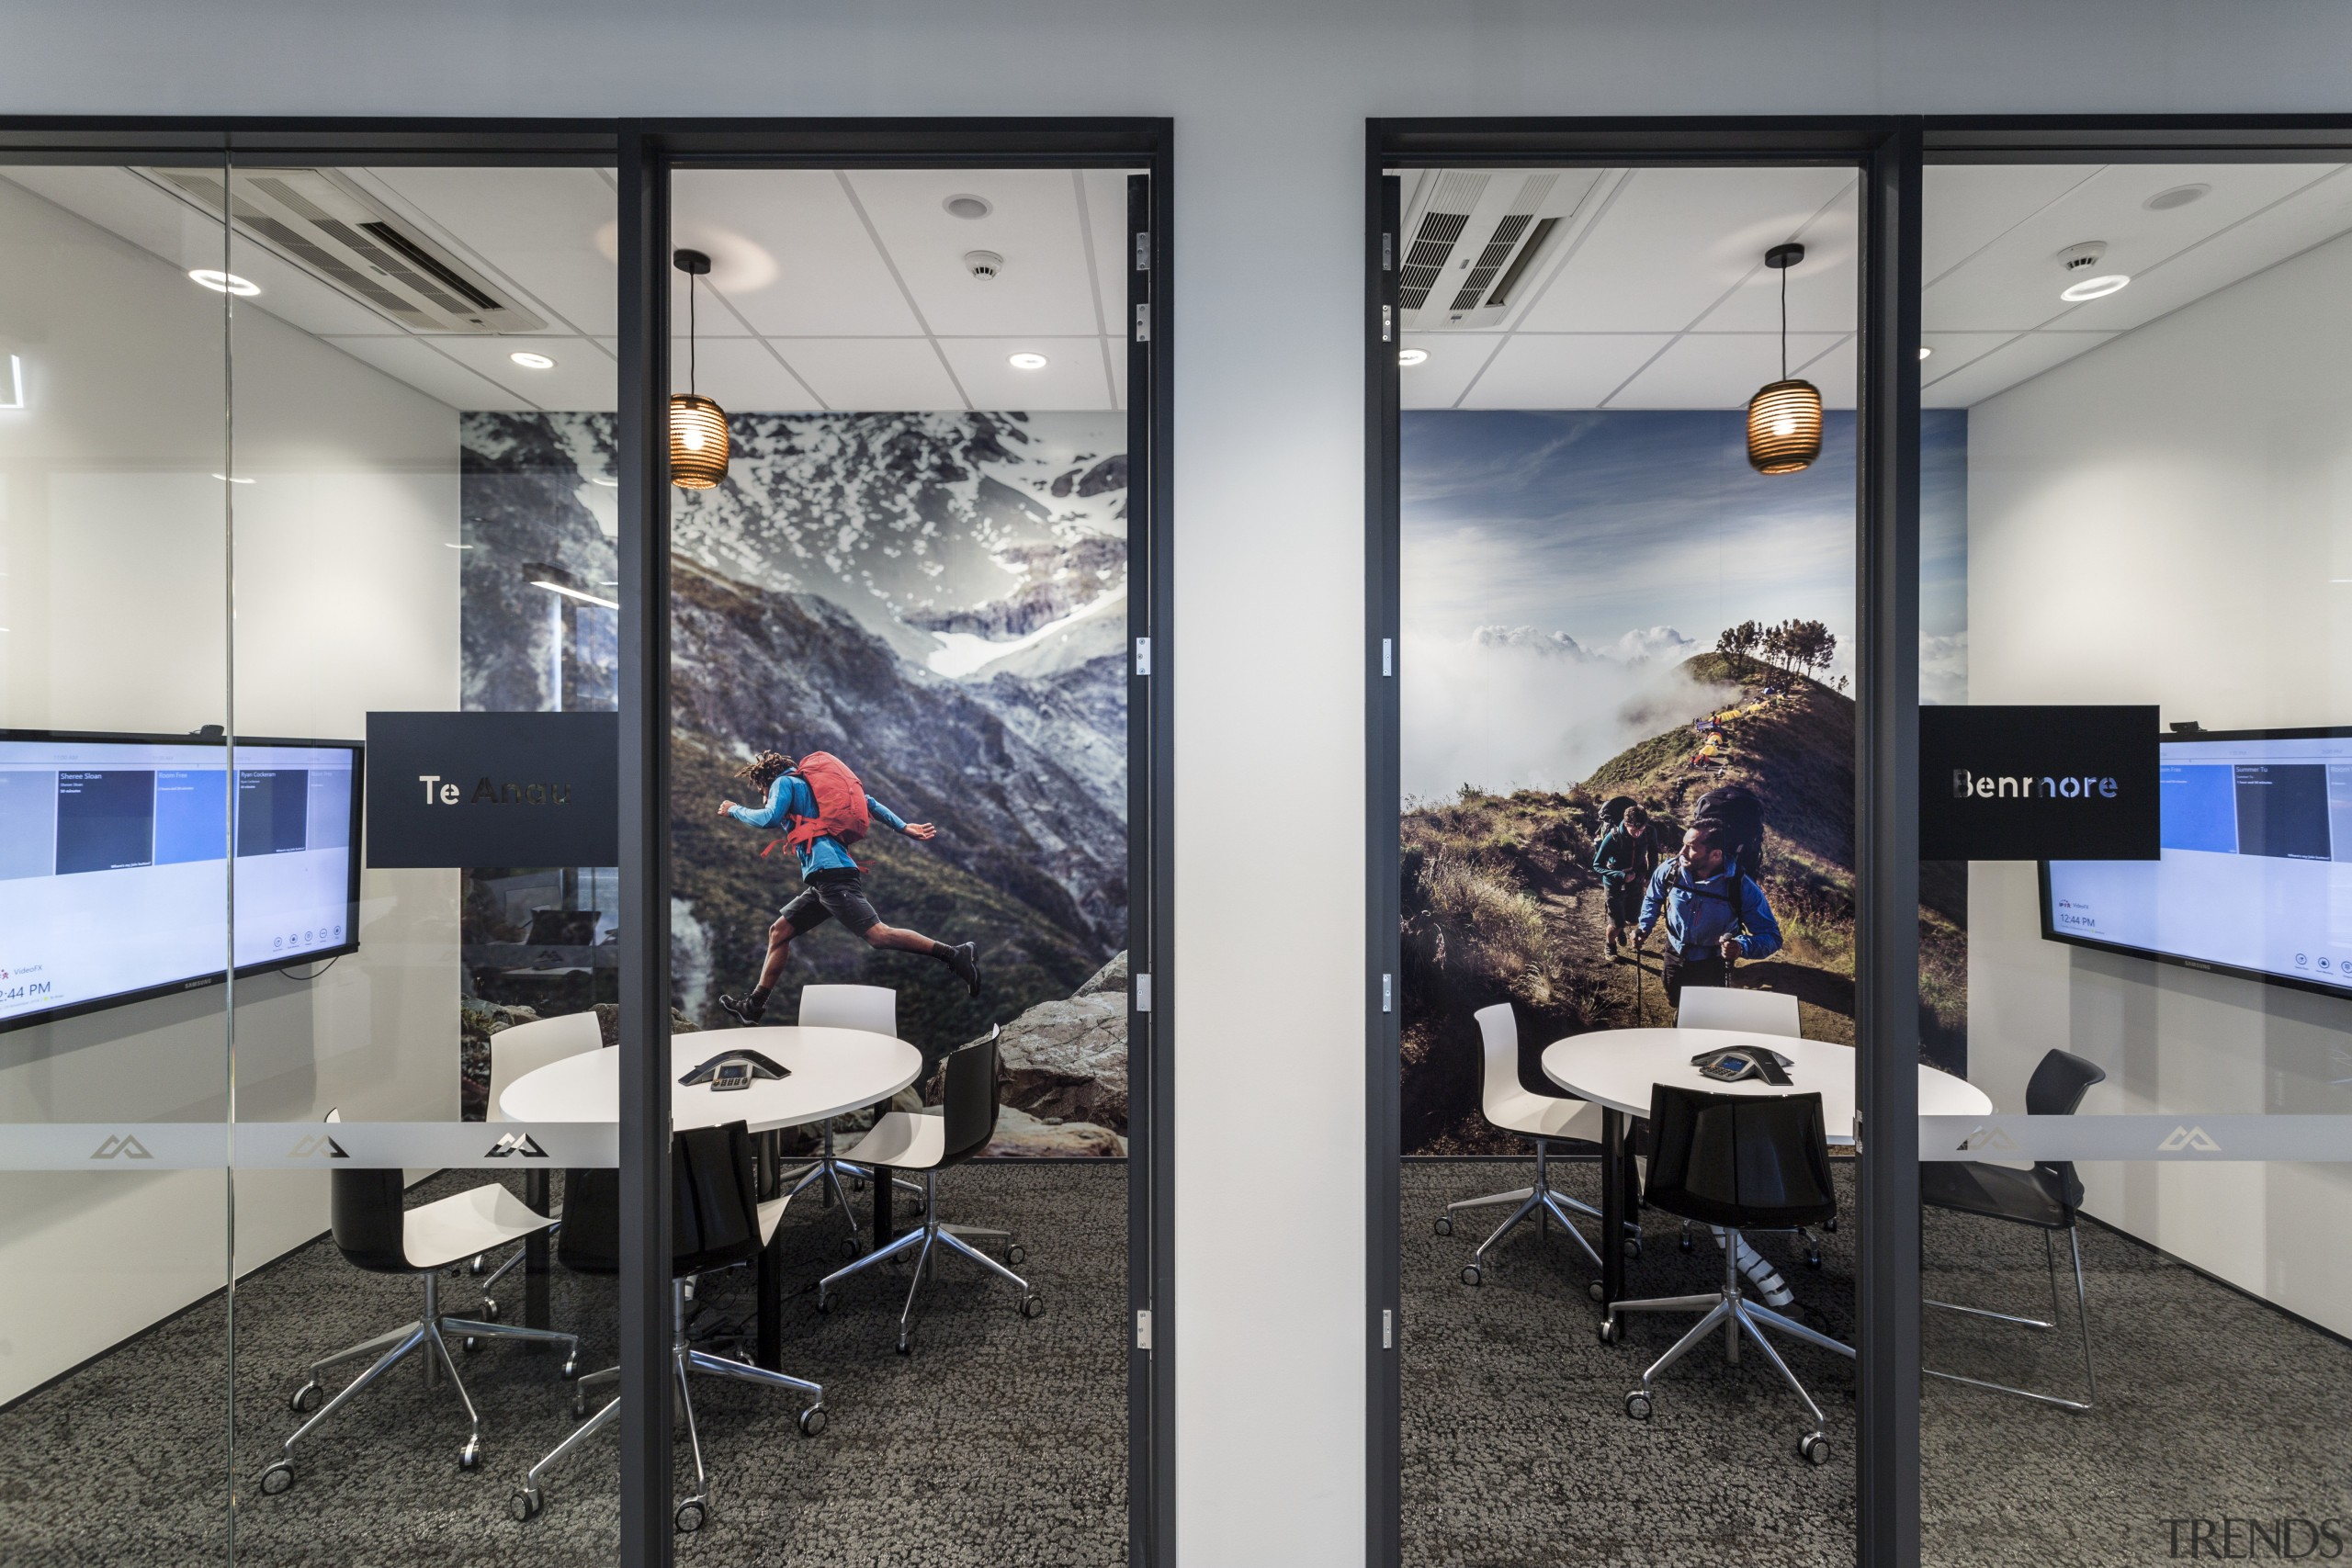 Action photo murals remind staff at the new interior design, office, technology, gray, black